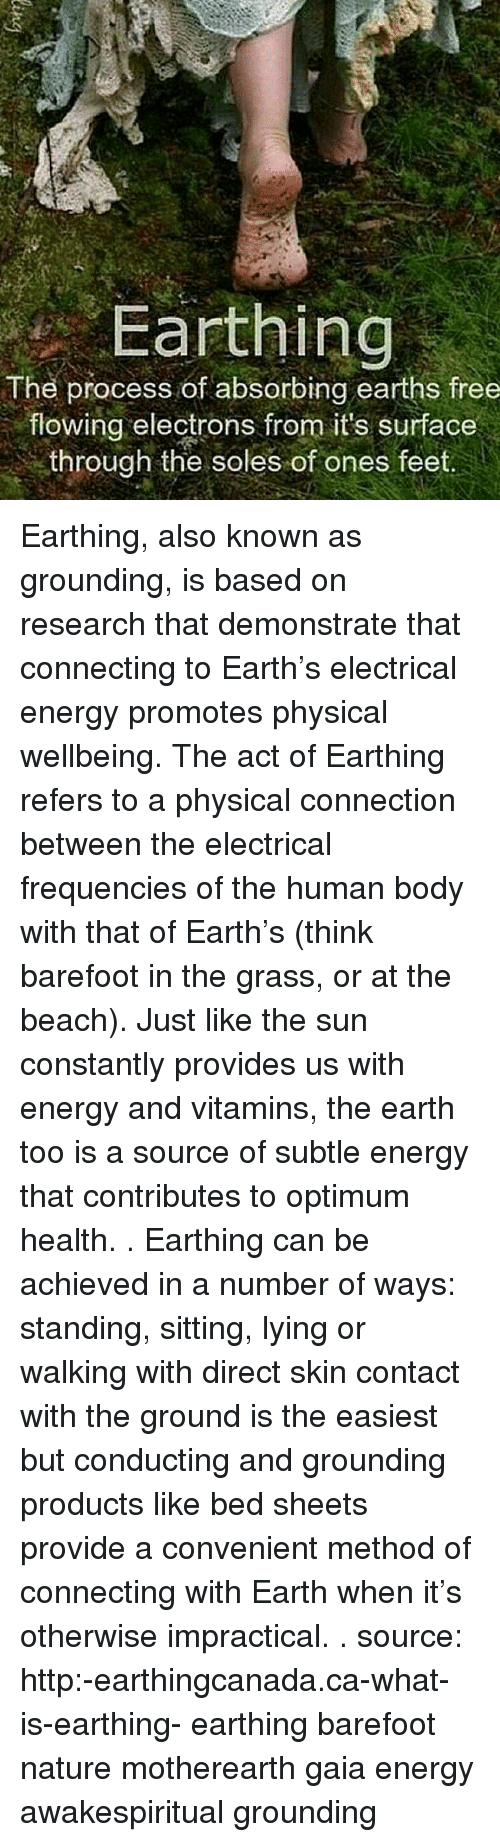 Memes, 🤖, and Feet: Earthing  The process of absorbing earths free  flowing electrons from its surface  through the soles of ones feet Earthing, also known as grounding, is based on research that demonstrate that connecting to Earth's electrical energy promotes physical wellbeing. The act of Earthing refers to a physical connection between the electrical frequencies of the human body with that of Earth's (think barefoot in the grass, or at the beach). Just like the sun constantly provides us with energy and vitamins, the earth too is a source of subtle energy that contributes to optimum health. . Earthing can be achieved in a number of ways: standing, sitting, lying or walking with direct skin contact with the ground is the easiest but conducting and grounding products like bed sheets provide a convenient method of connecting with Earth when it's otherwise impractical. . source: http:-earthingcanada.ca-what-is-earthing- earthing barefoot nature motherearth gaia energy awakespiritual grounding